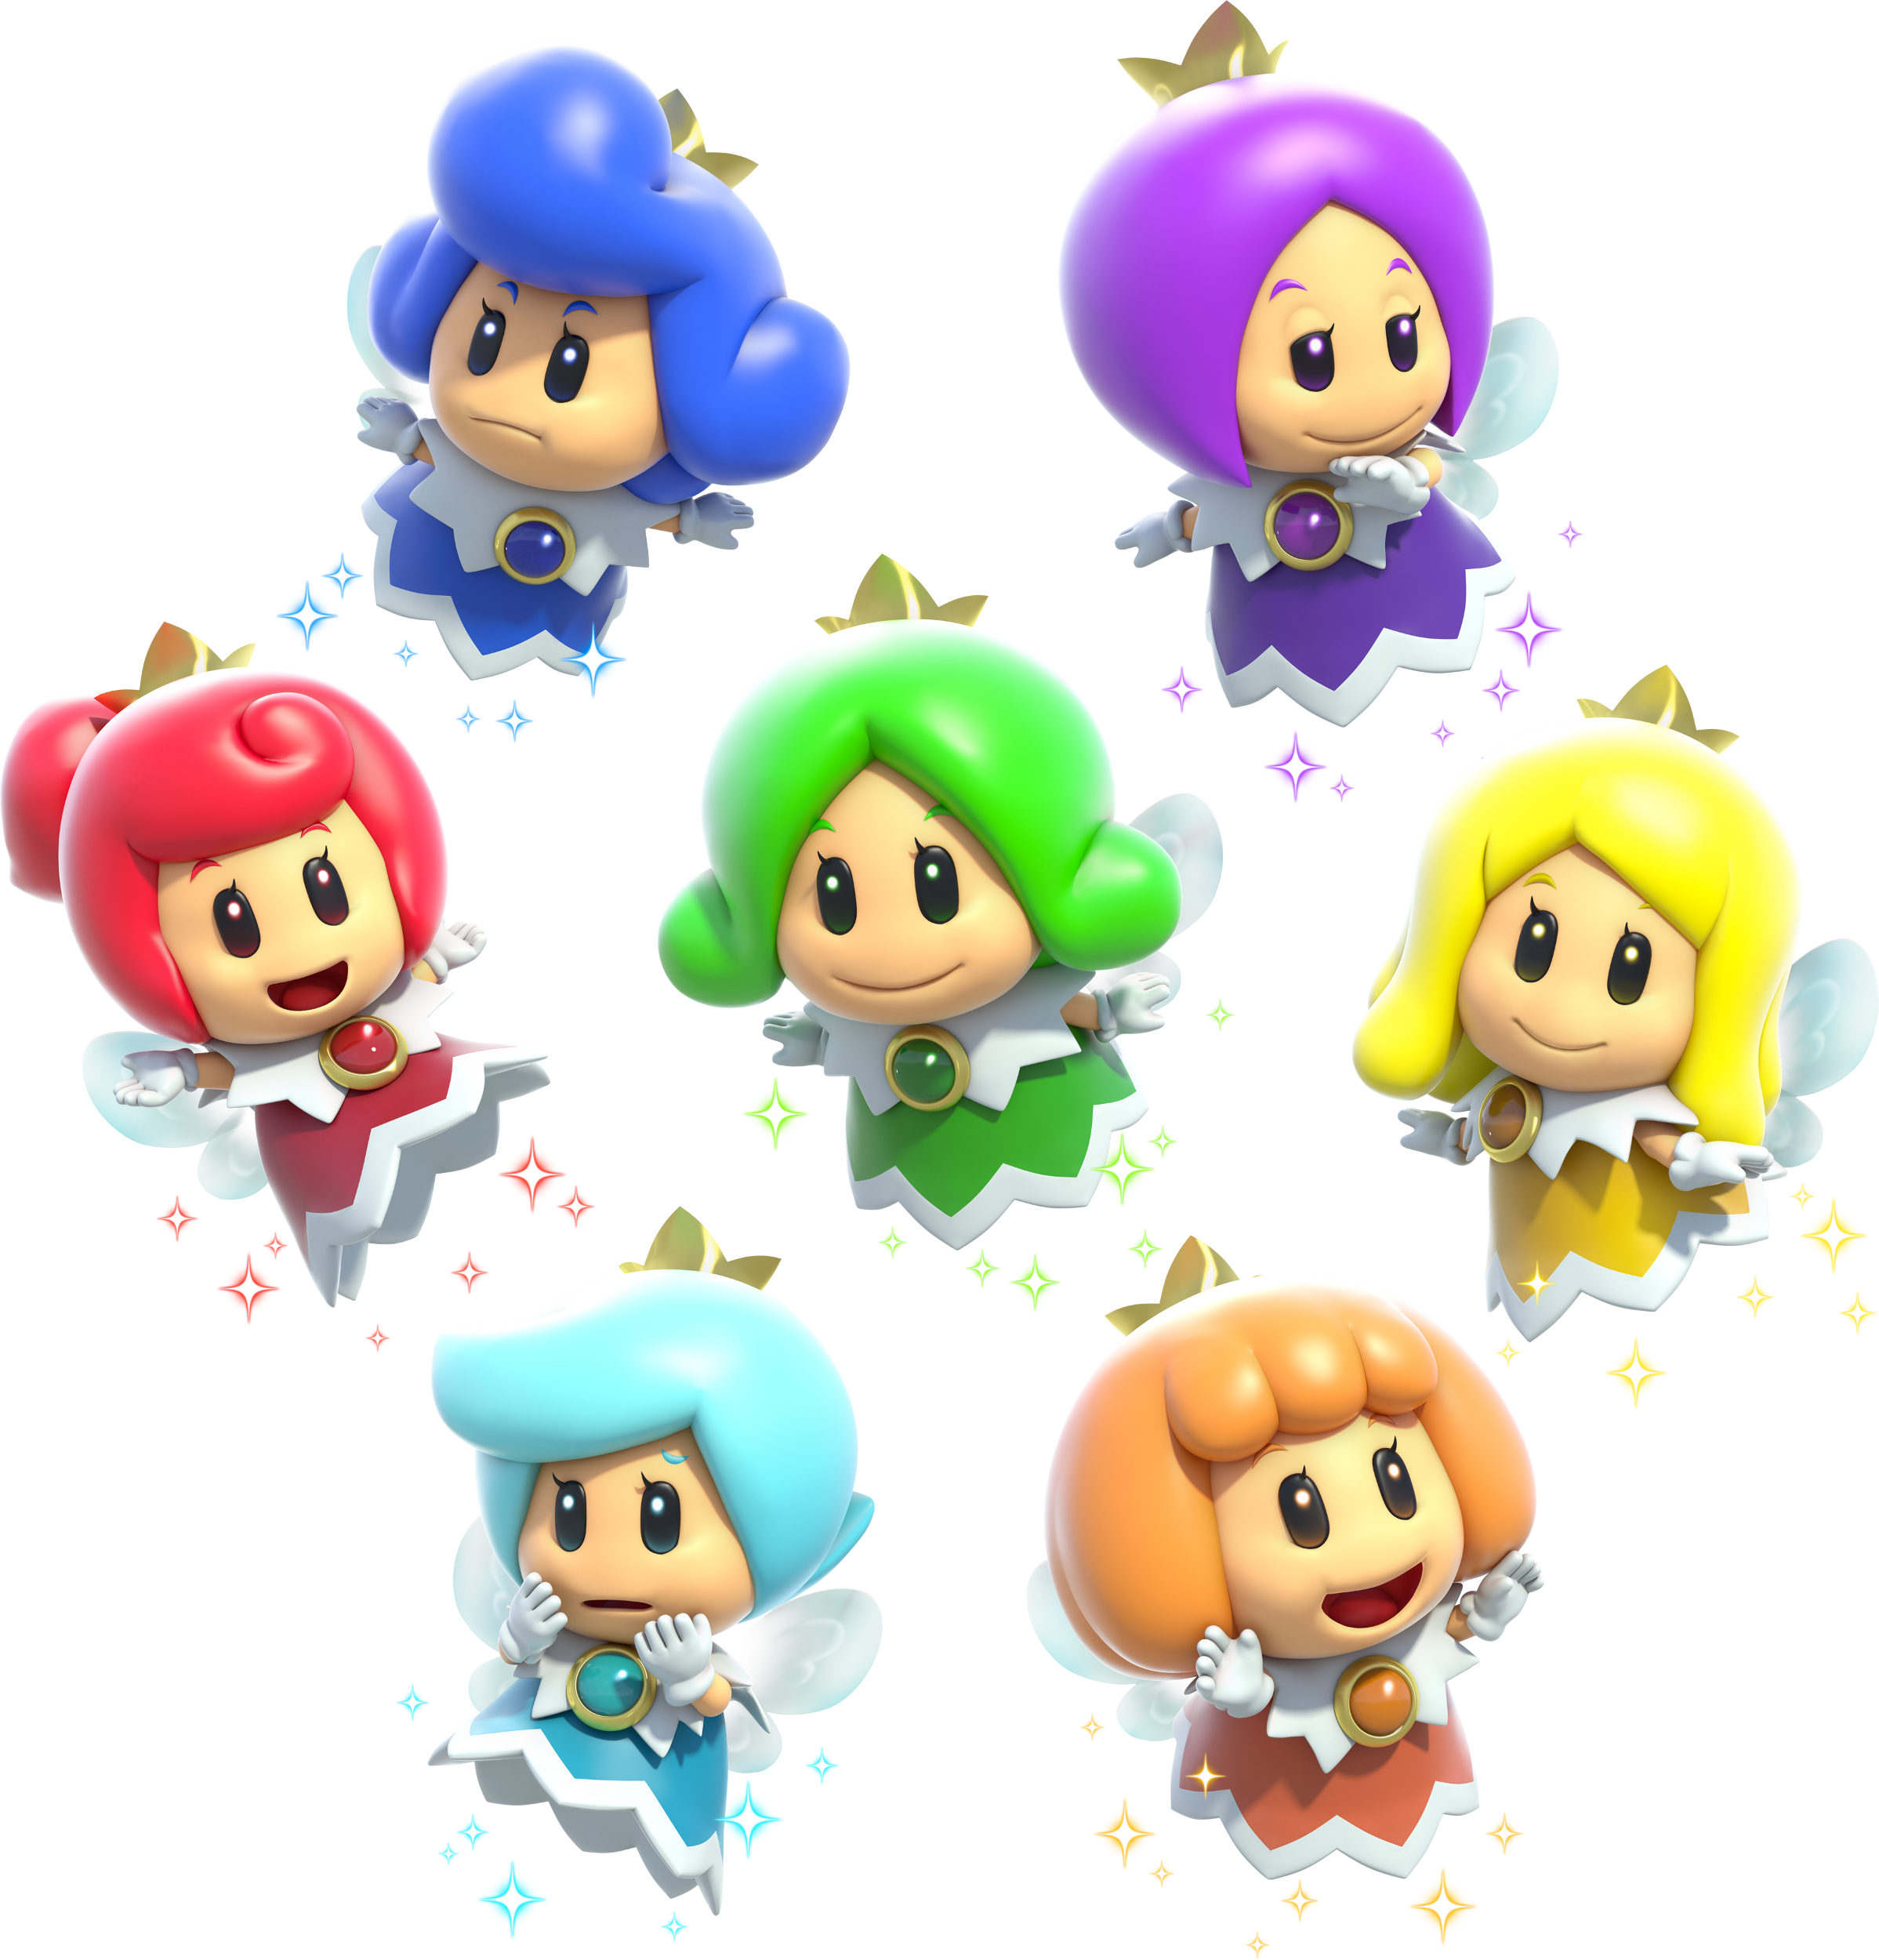 Fairy_Group_Artwork_-_Super_Mario_3D_World.png